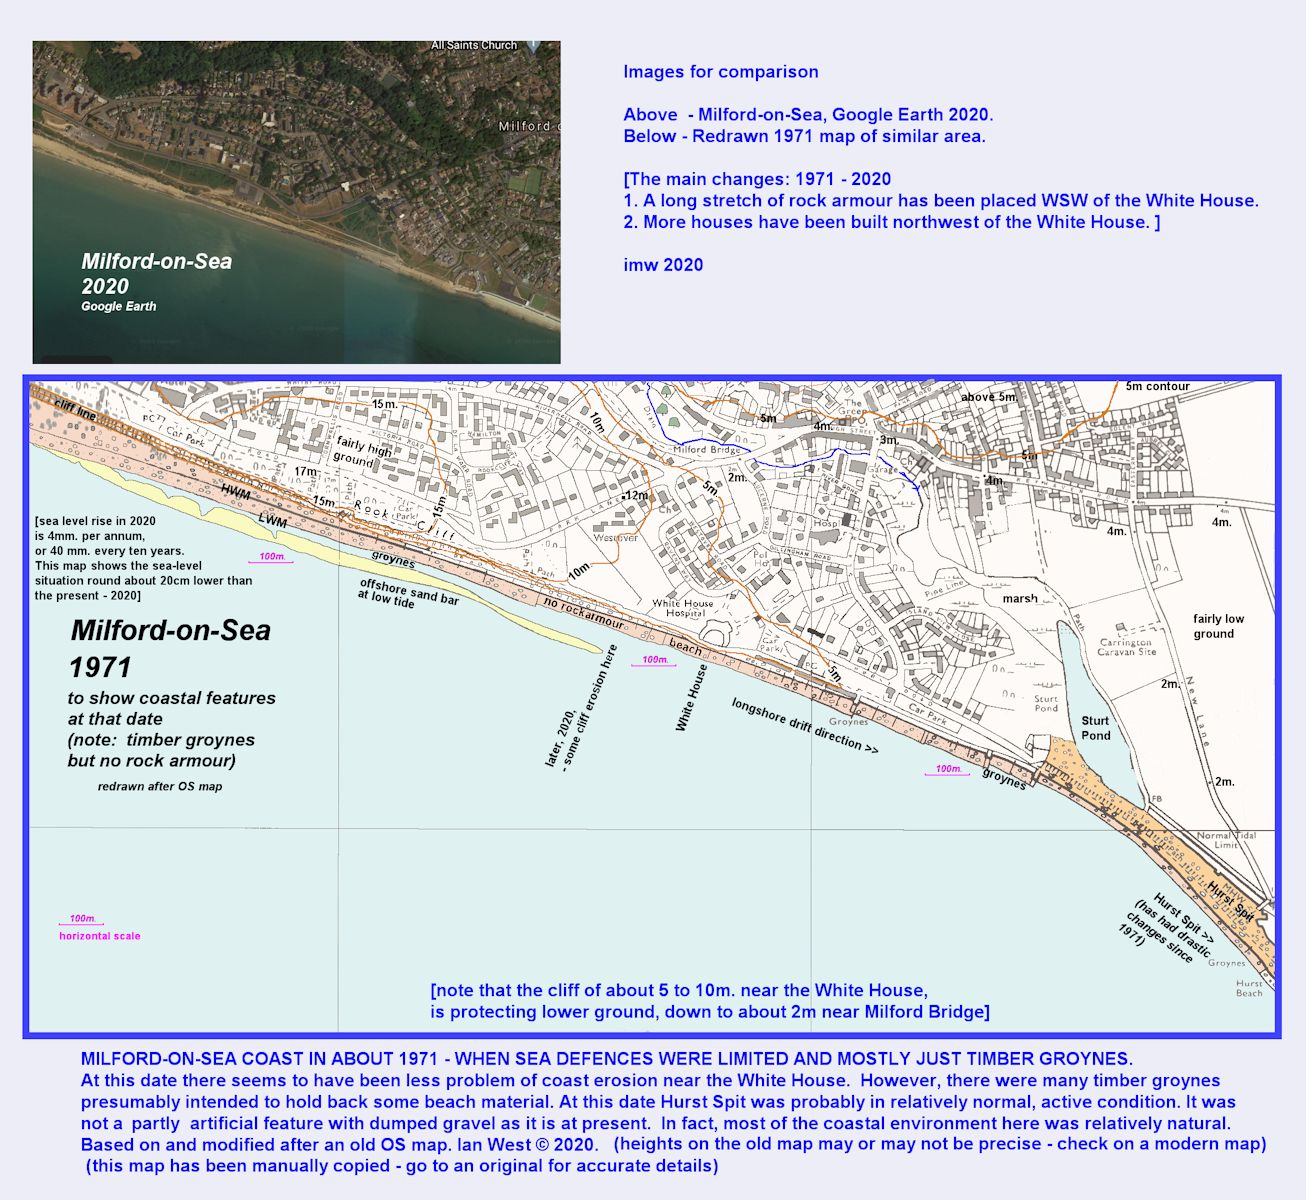 Map and aerael photograph, showing changes at the coast at Milford-on-Sea from the 1970s